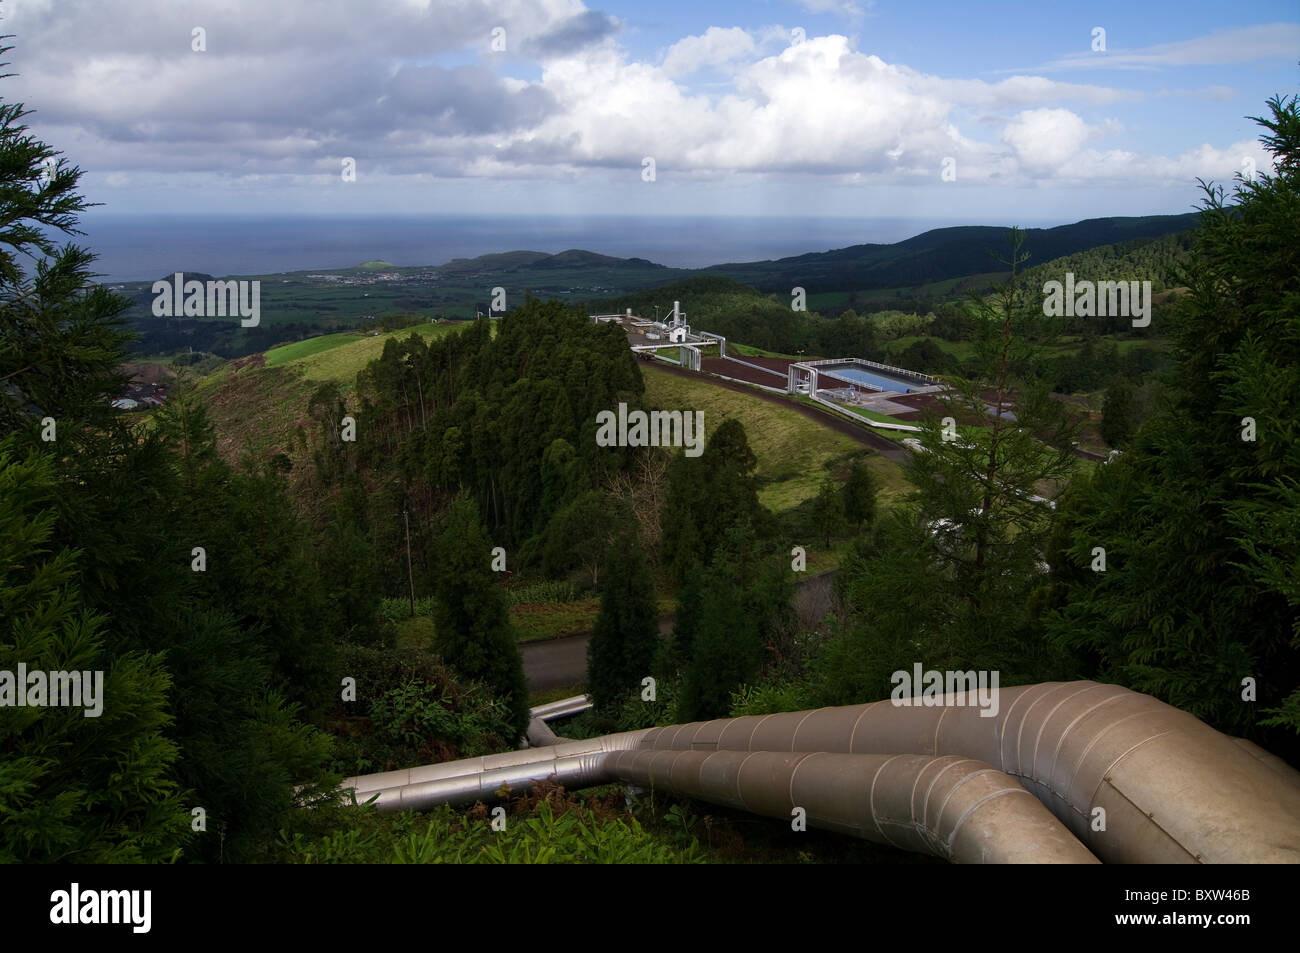 Geothermal power plant installation in the Azores used to generate energy / electricity - Stock Image